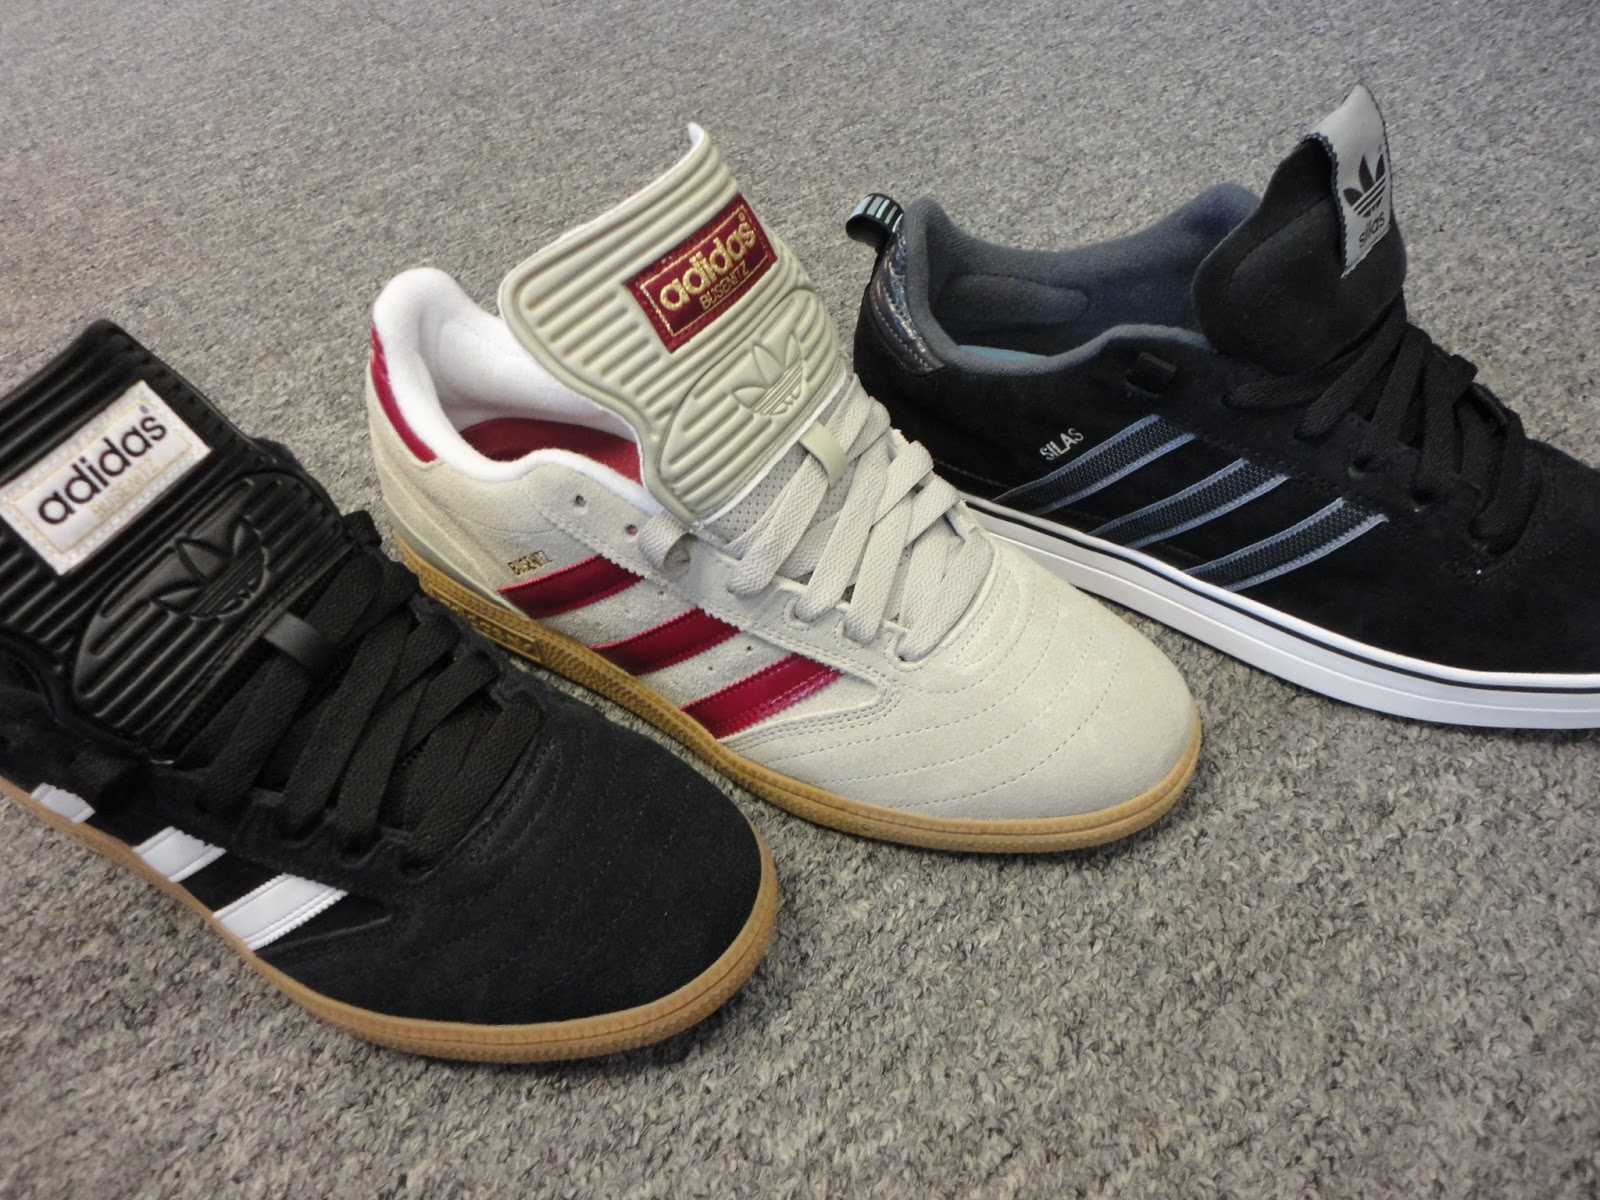 89e7dd6c12280b Two returning styles in three new colors of Summer Adidas footwear!